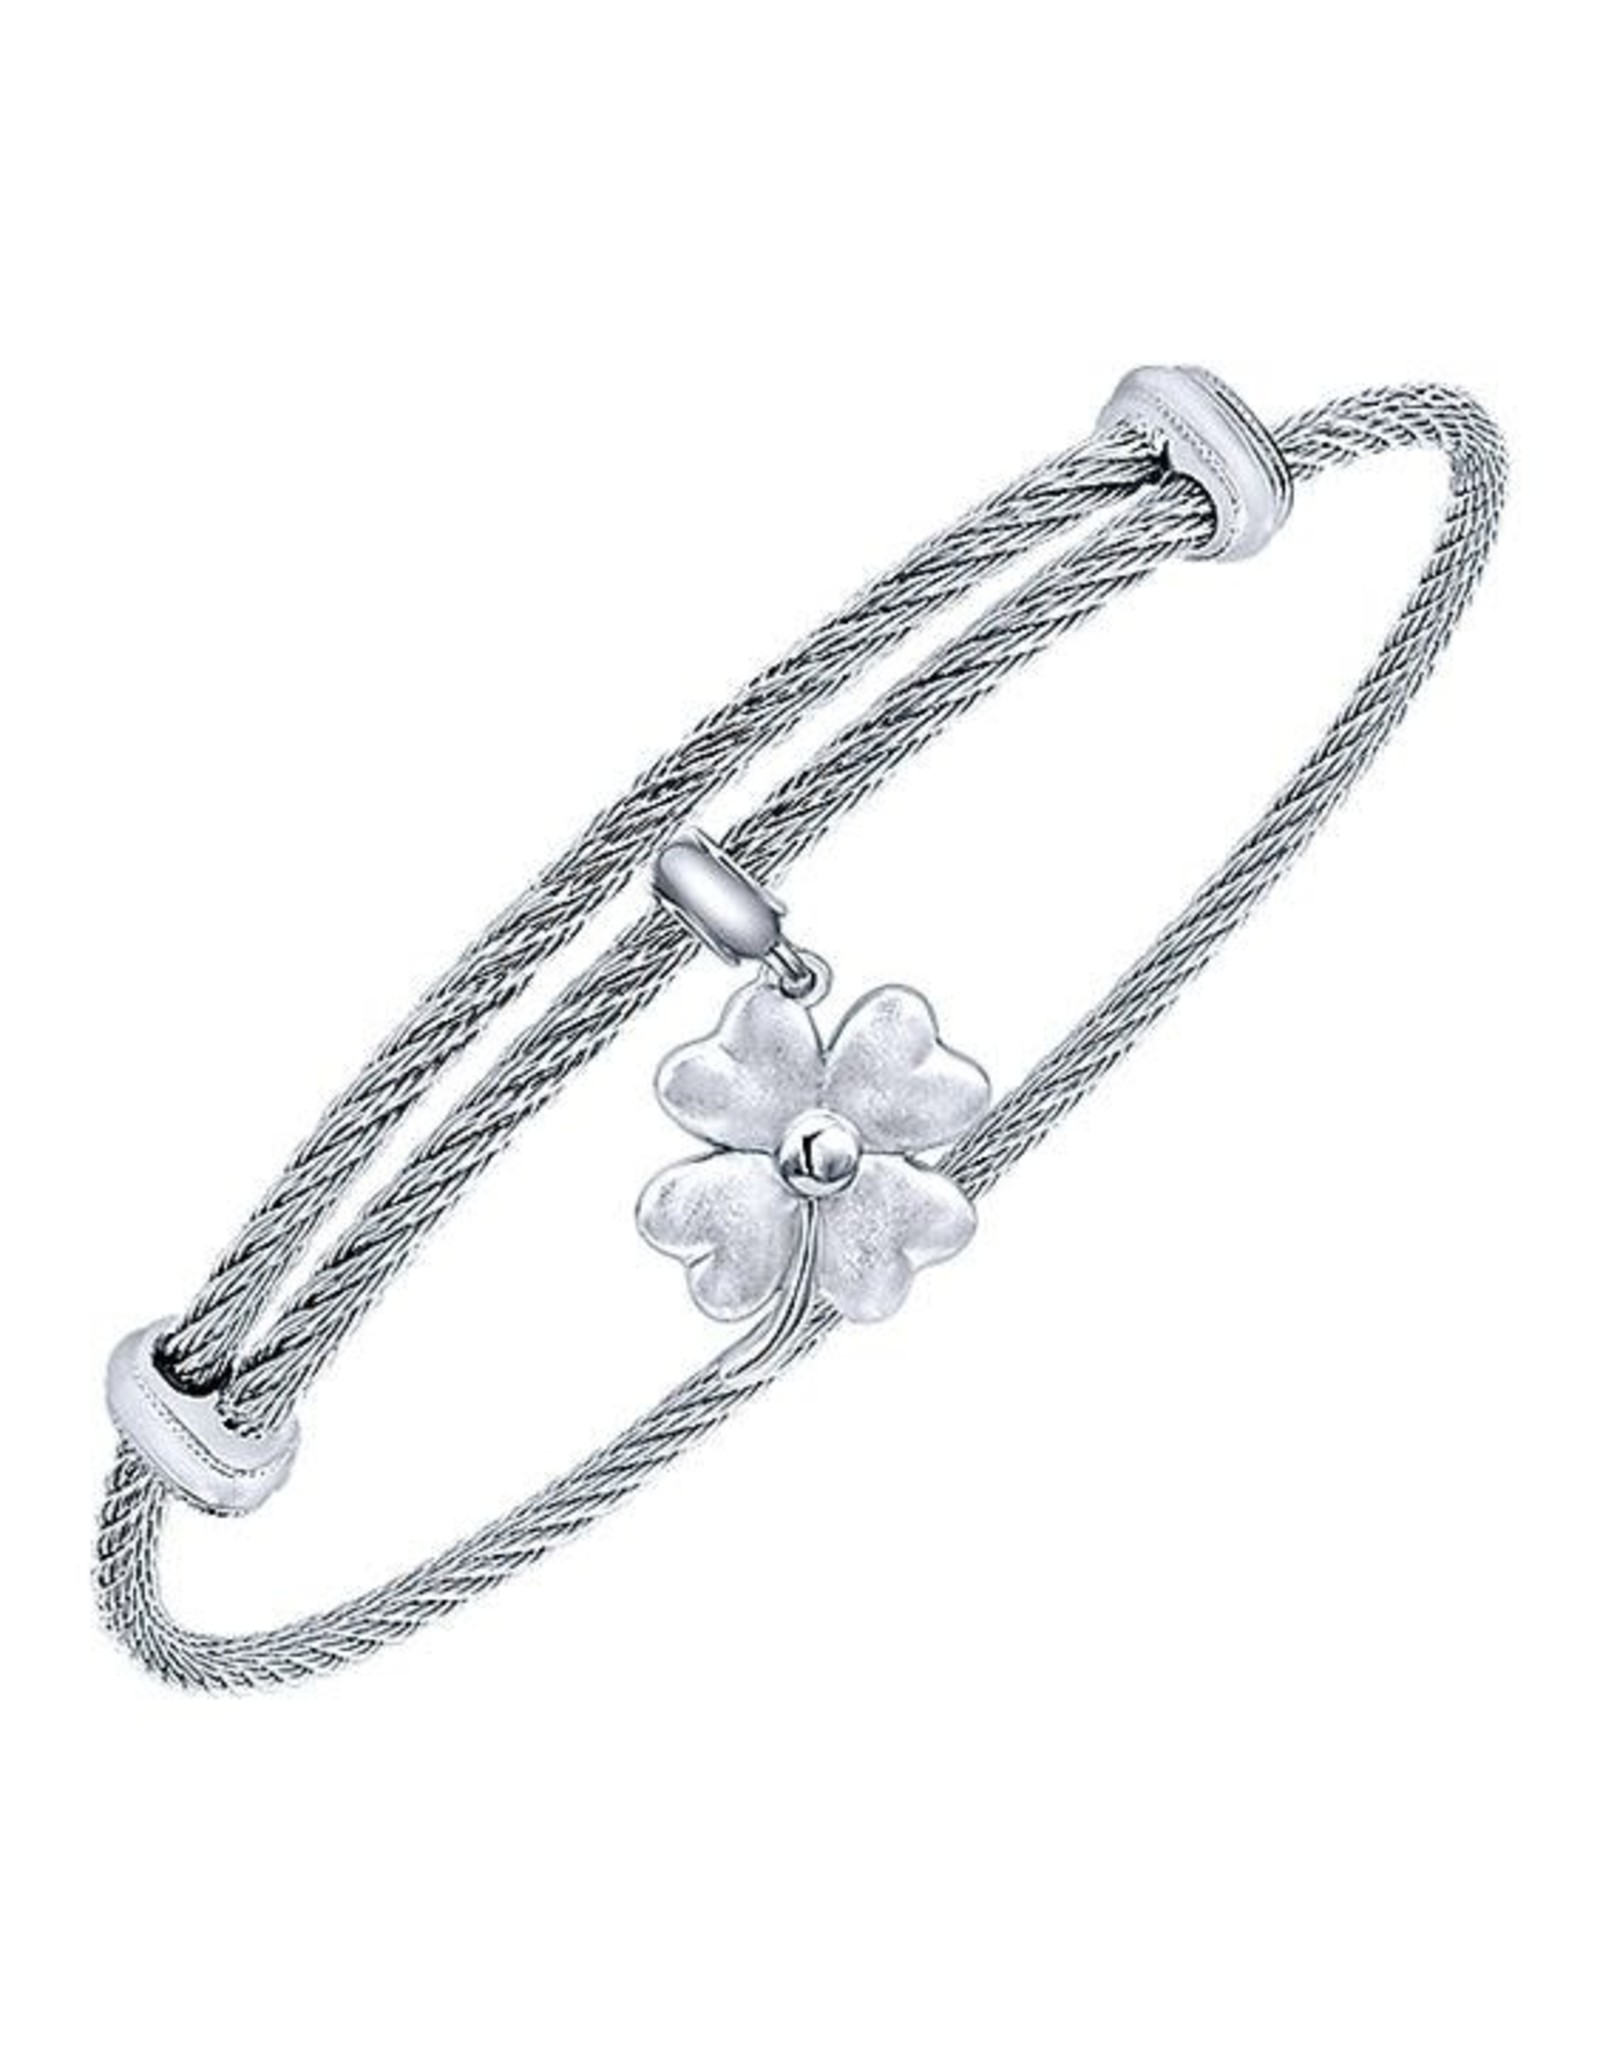 Adjustable Twisted Cable Stainless Steel Bangle Bracelet with Sterling Silver 4 Leaf Clover Charm